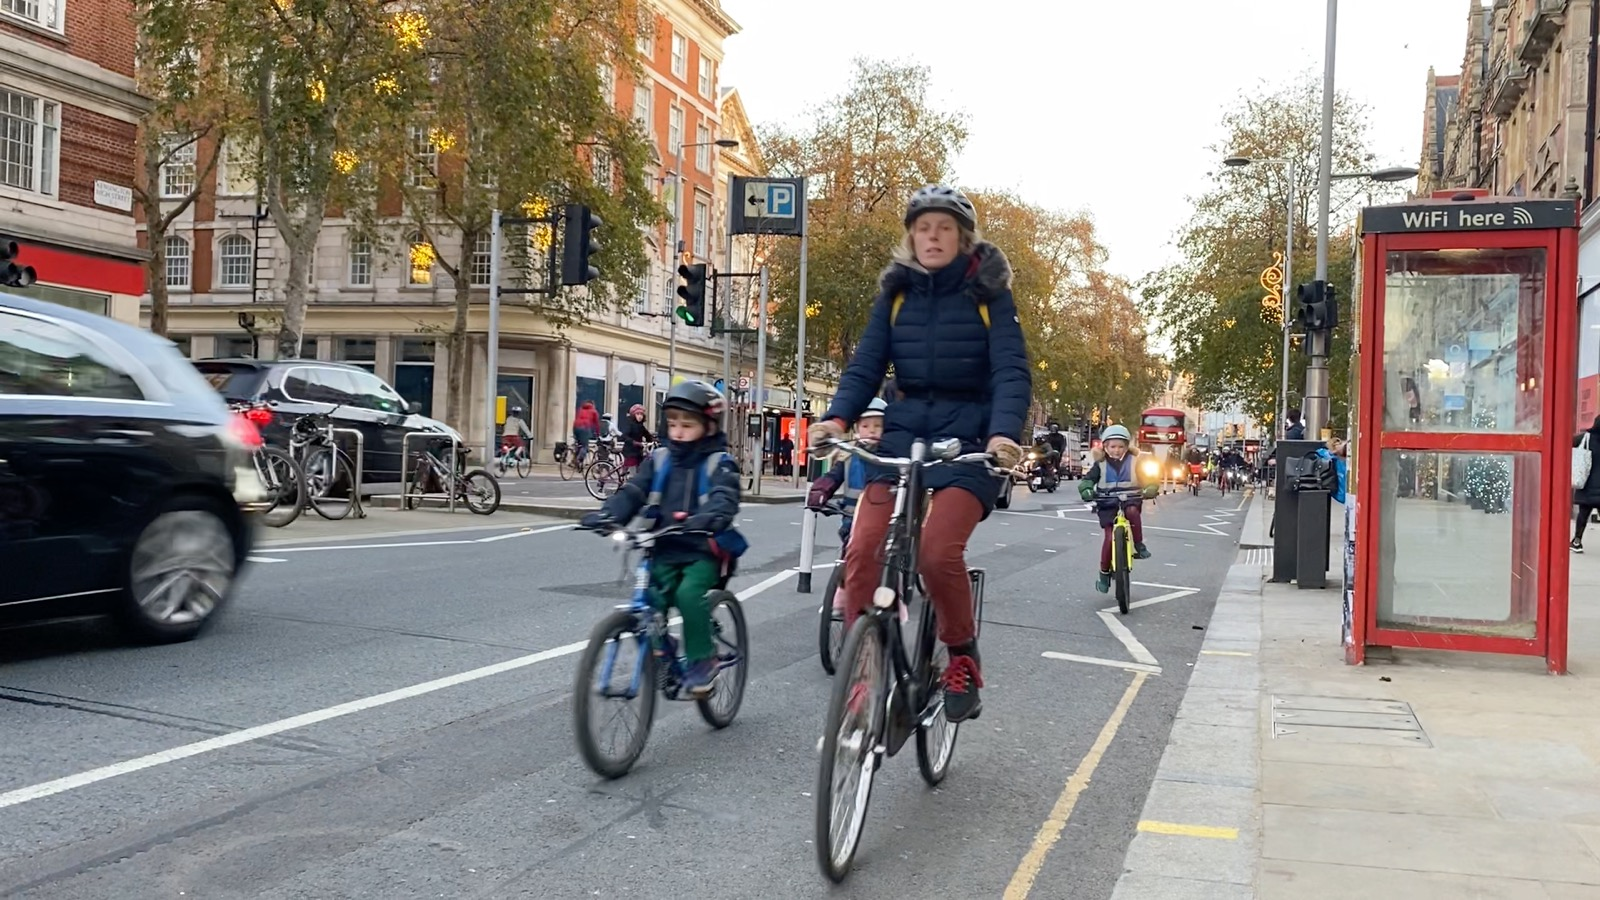 Mum and Son cycling on High Street Kensington